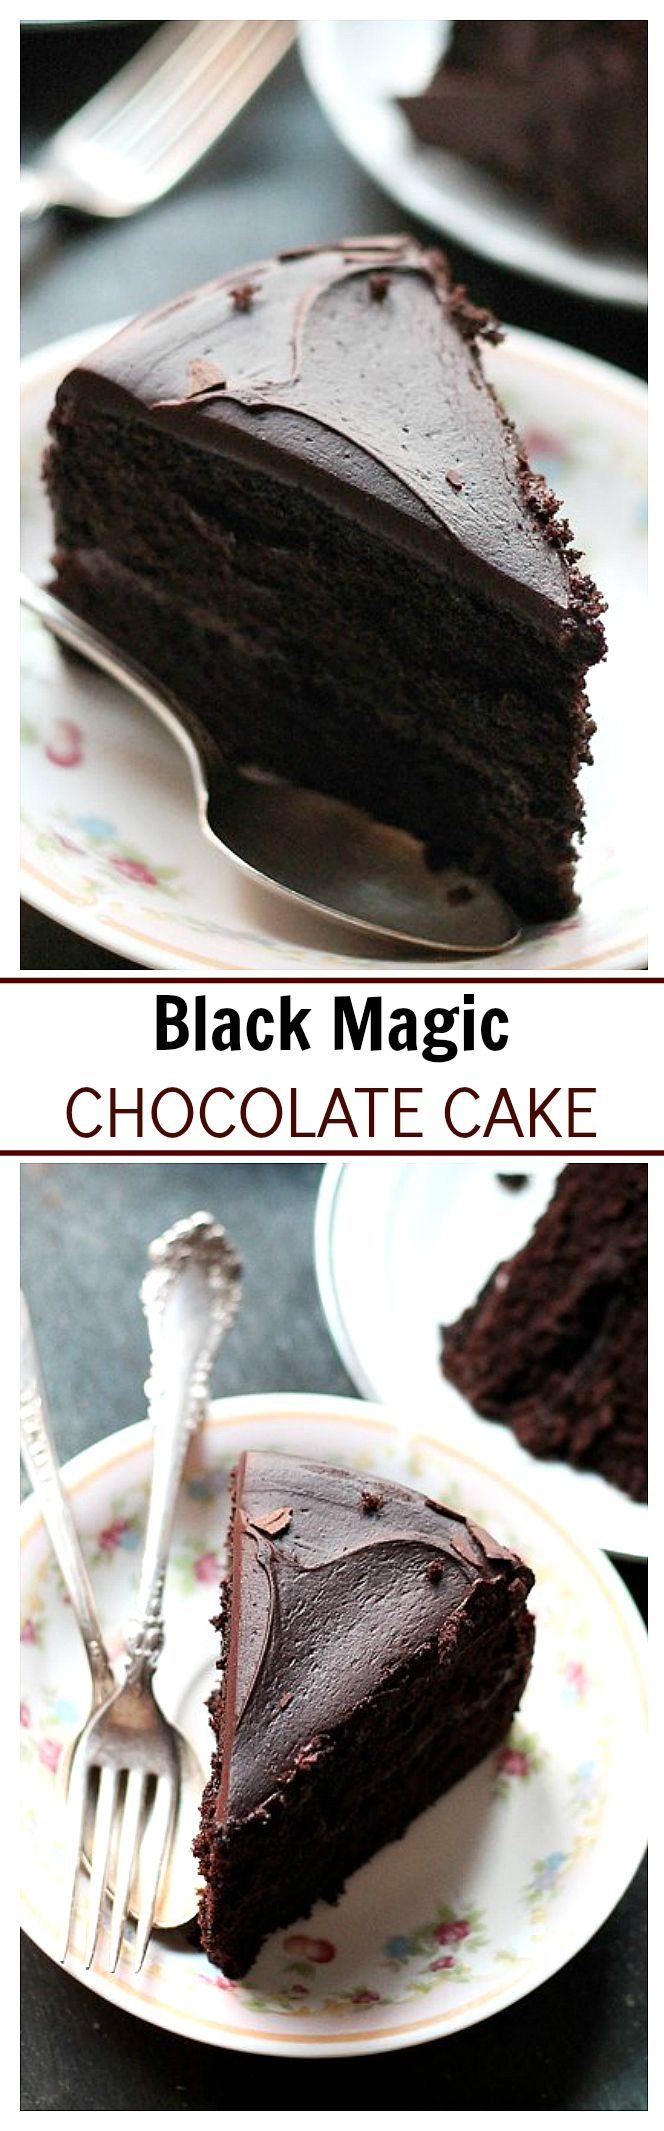 This is my go-to chocolate cake recipe. Moist rich and delicious dark chocolate cake that's perfect for Valentine's Day!